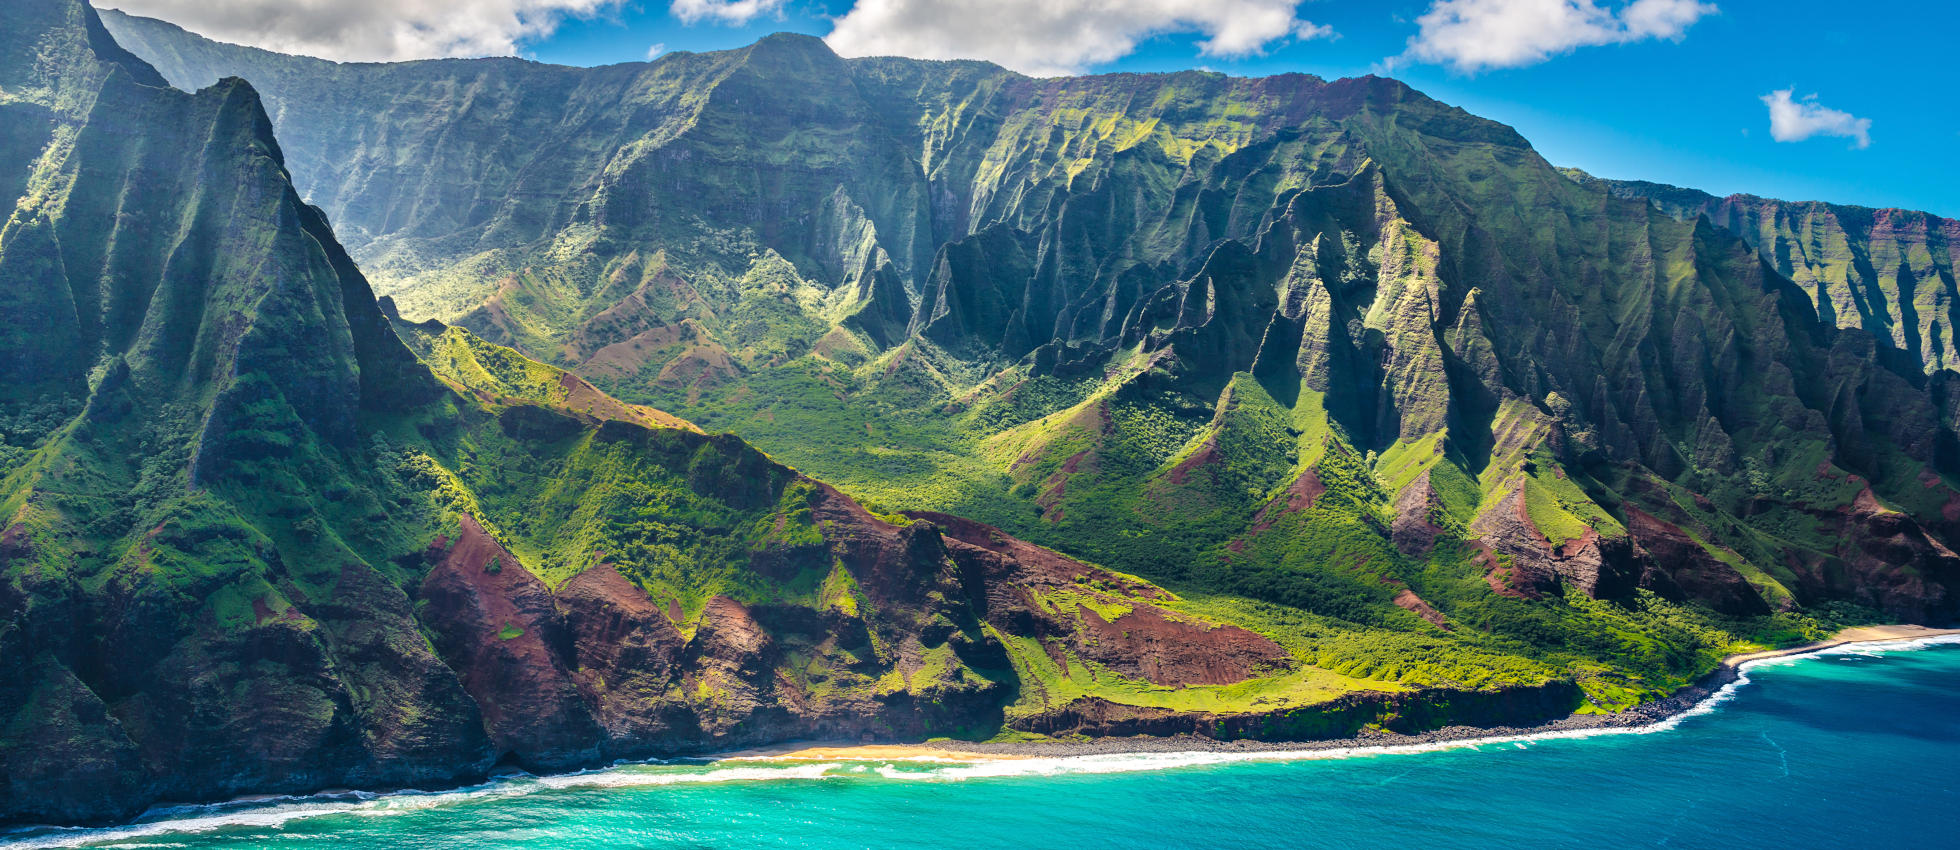 Gap Year Program - ARCC Gap | Hawaii: O'ahu, Kauai & the Big Island  1